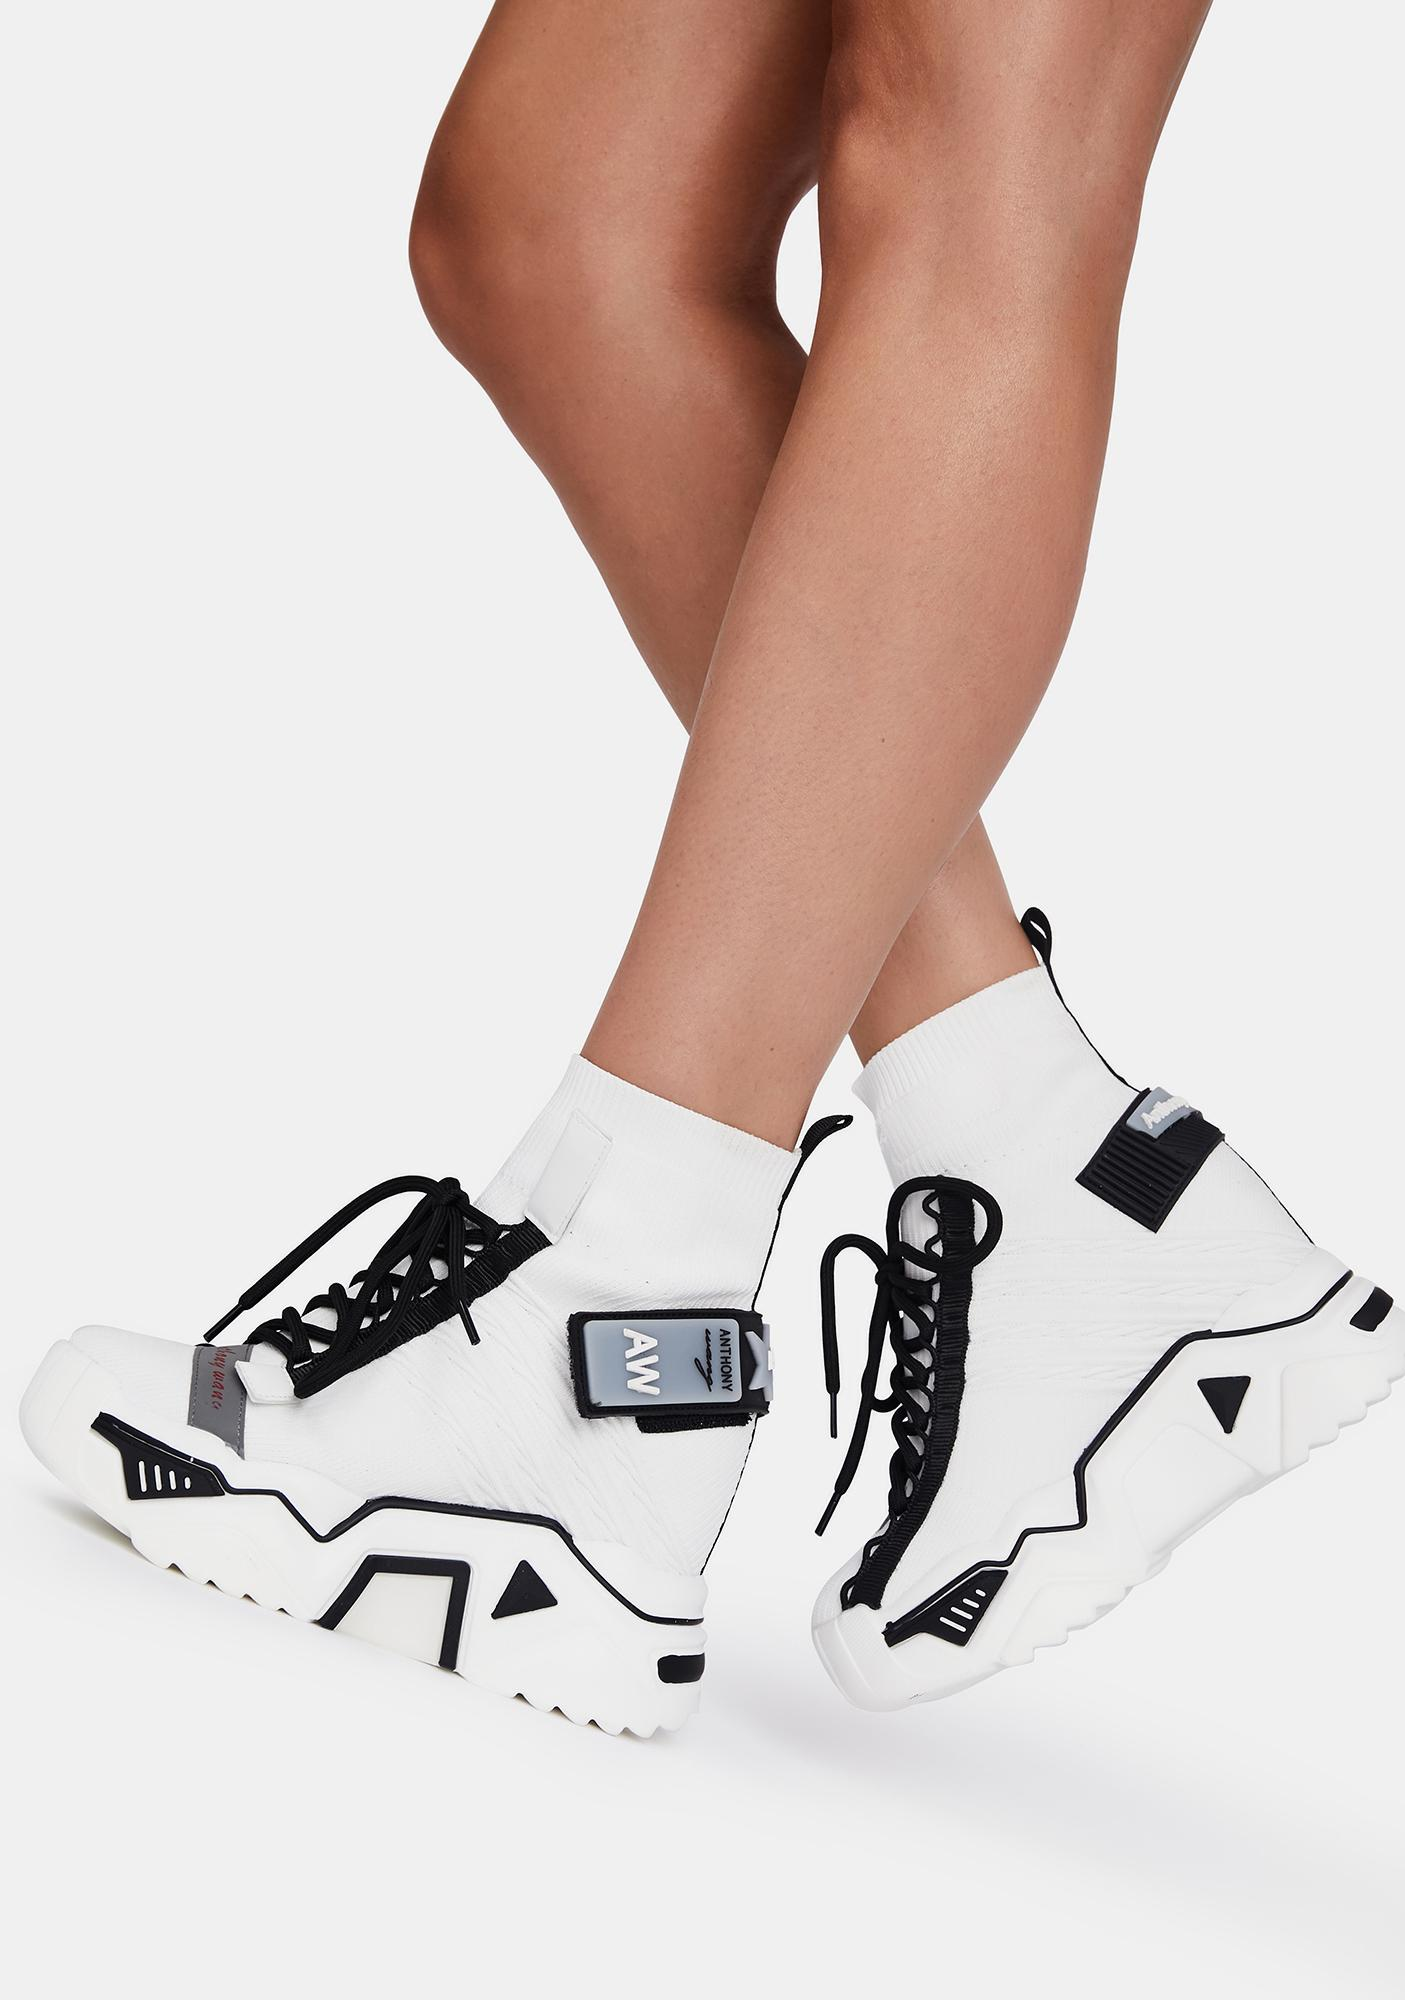 Anthony Wang White Clout Chasin' Platform Sneakers